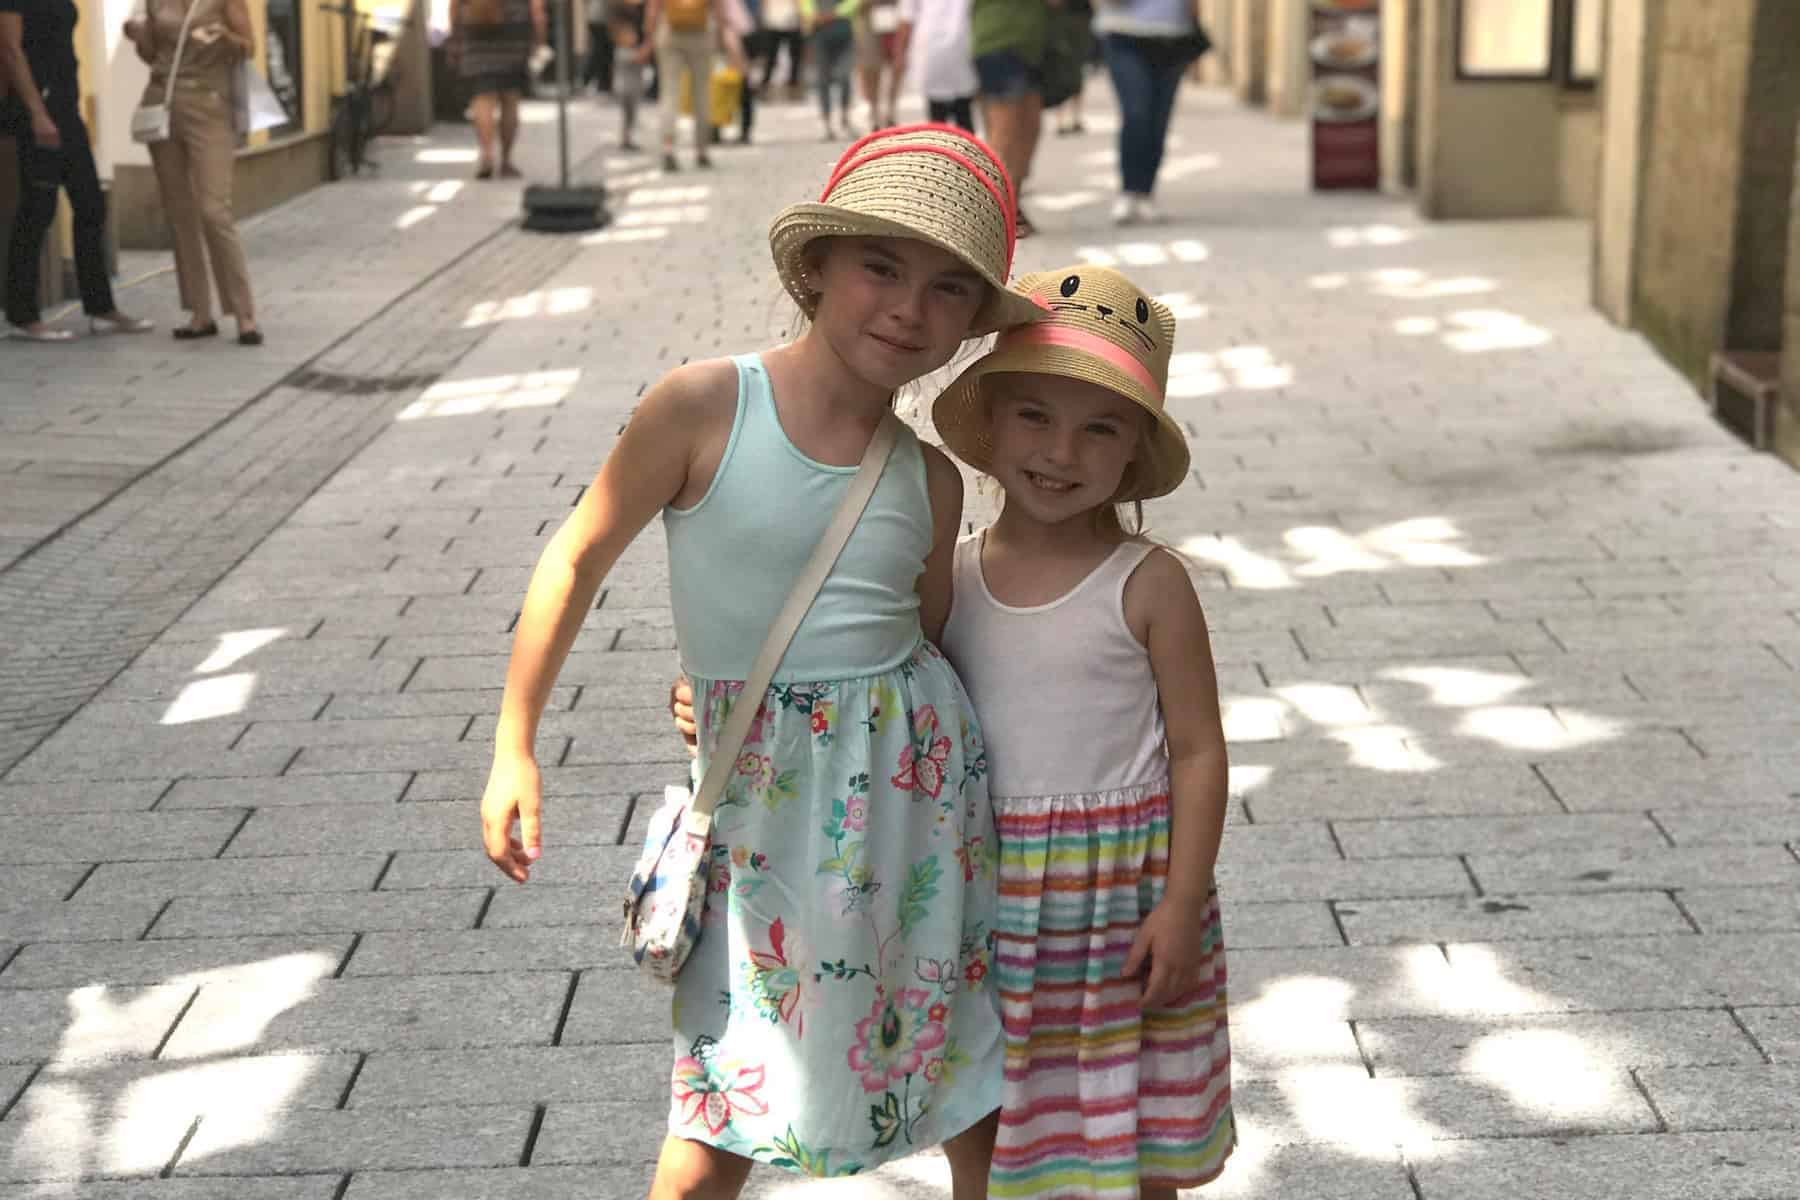 Strolling the streets of Salzburg